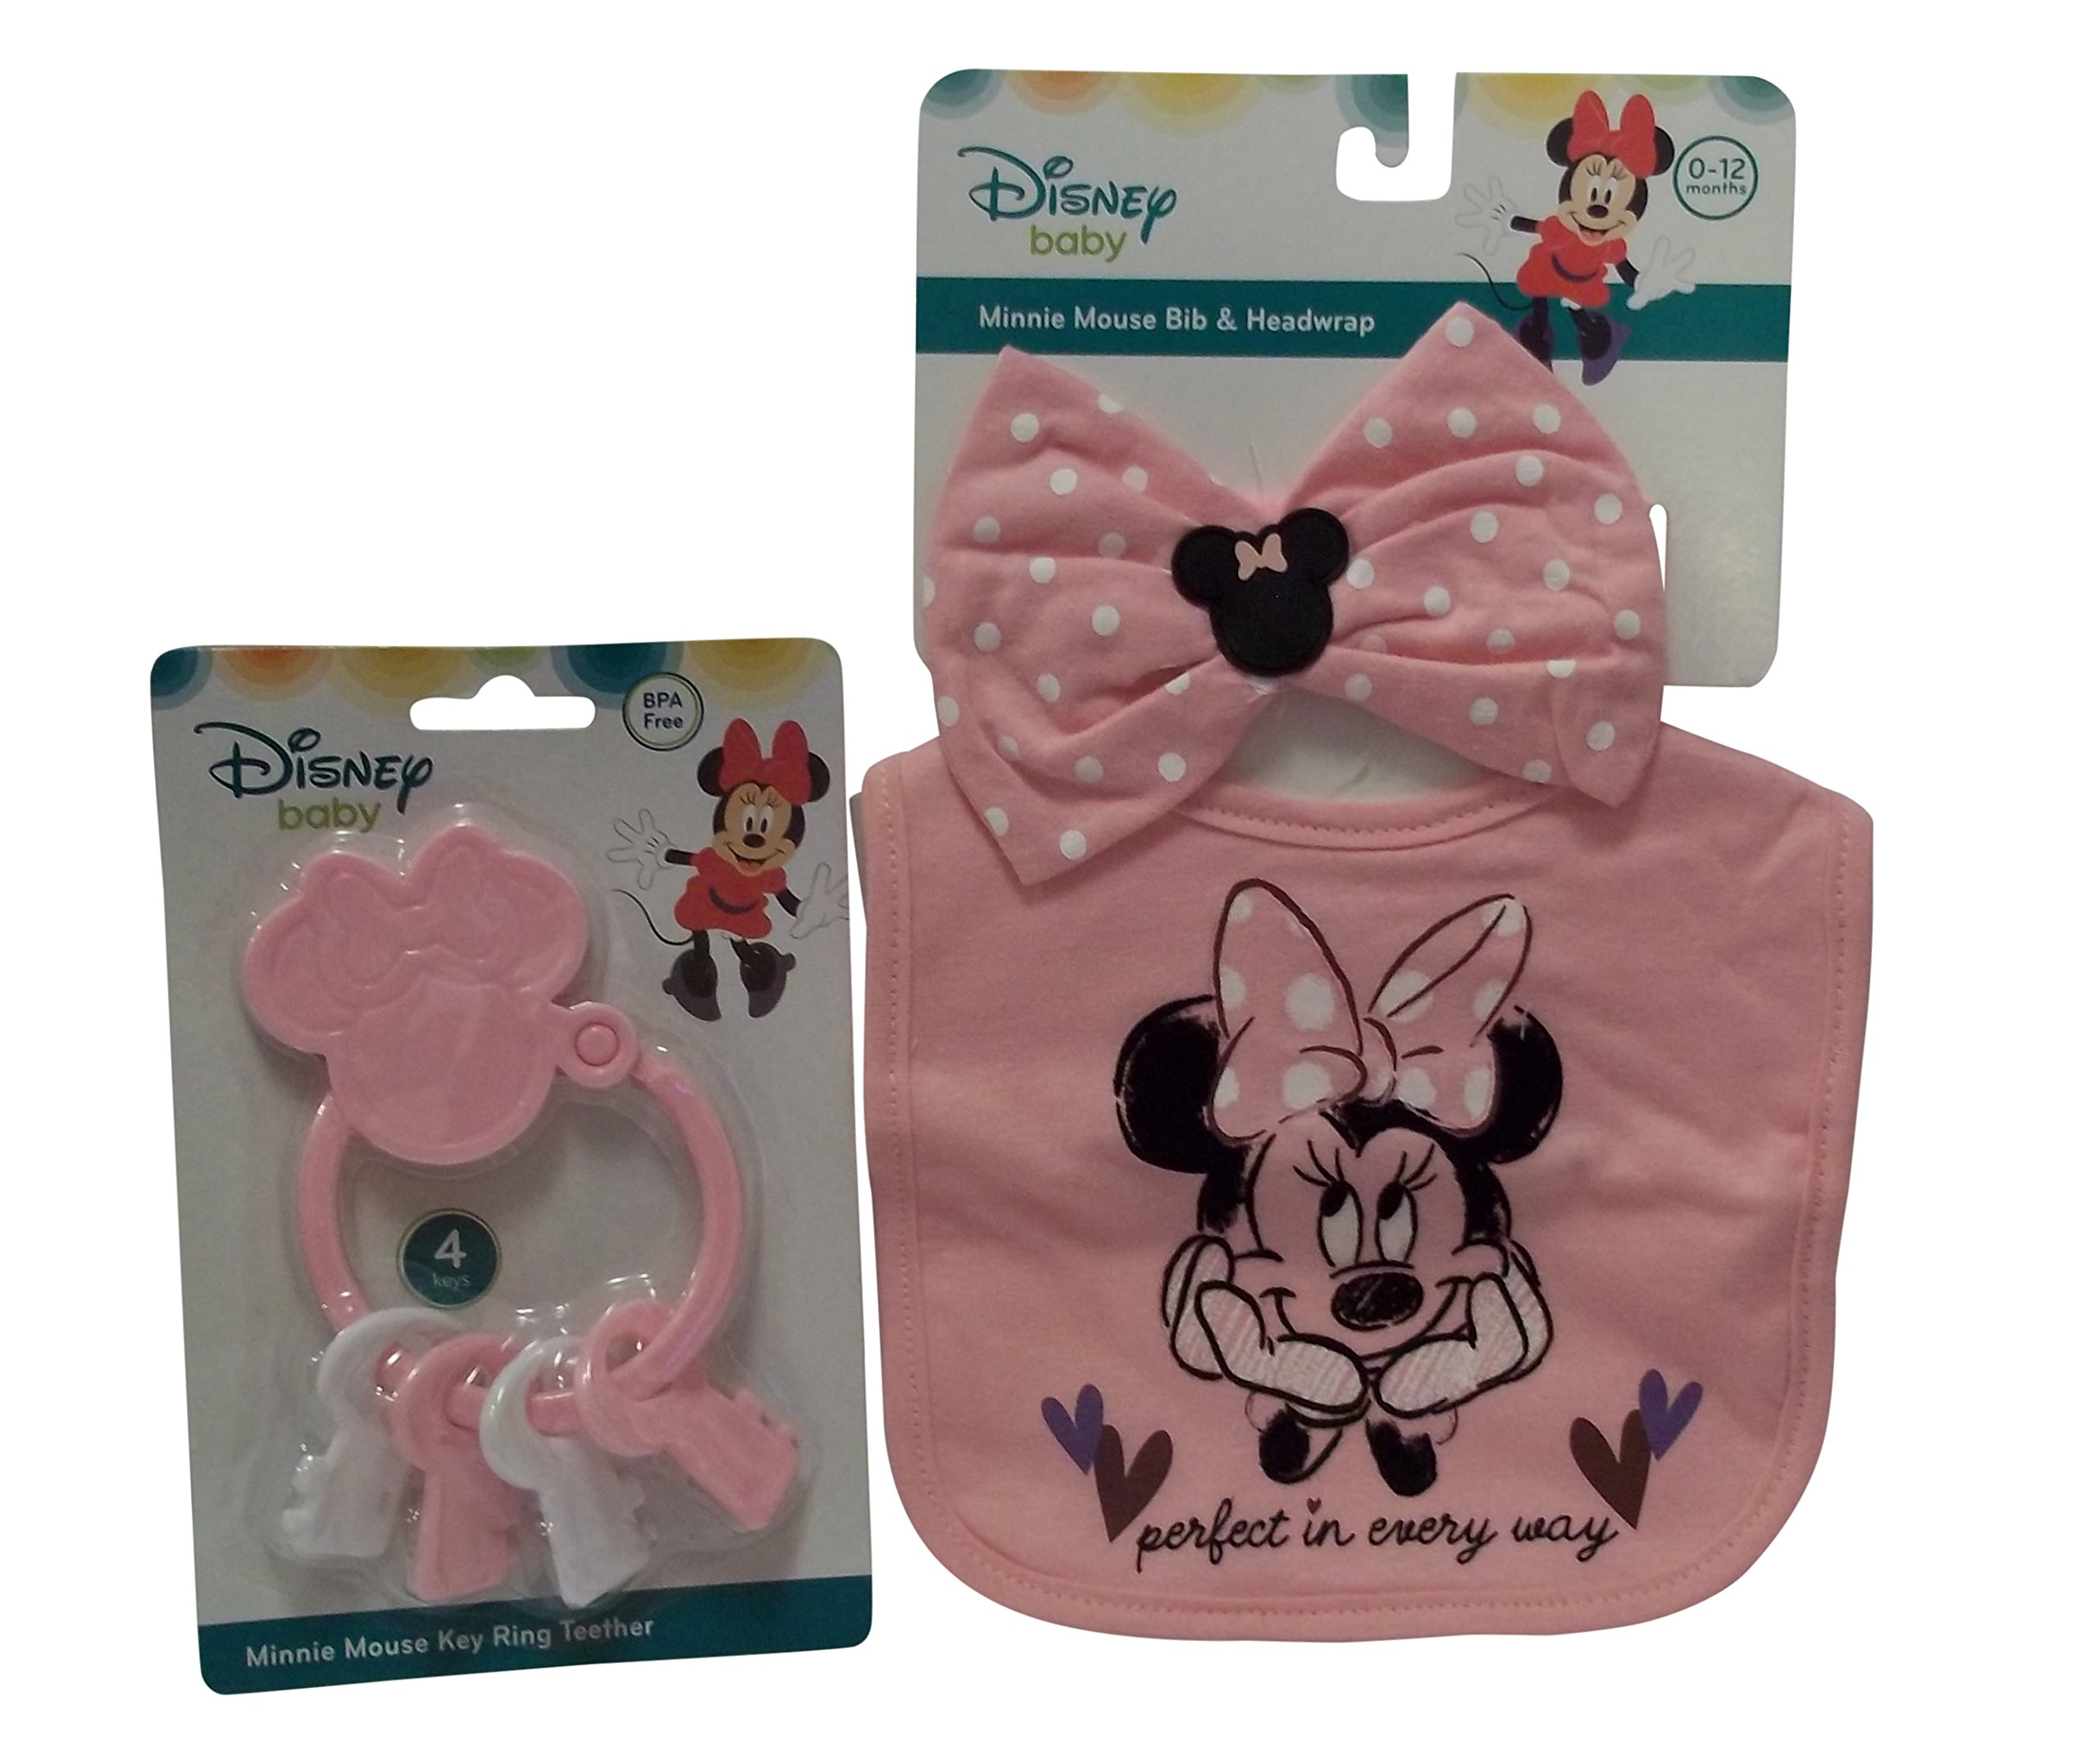 Disney Bib with Bow & Key Ring Teether Set (Minnie Mouse)